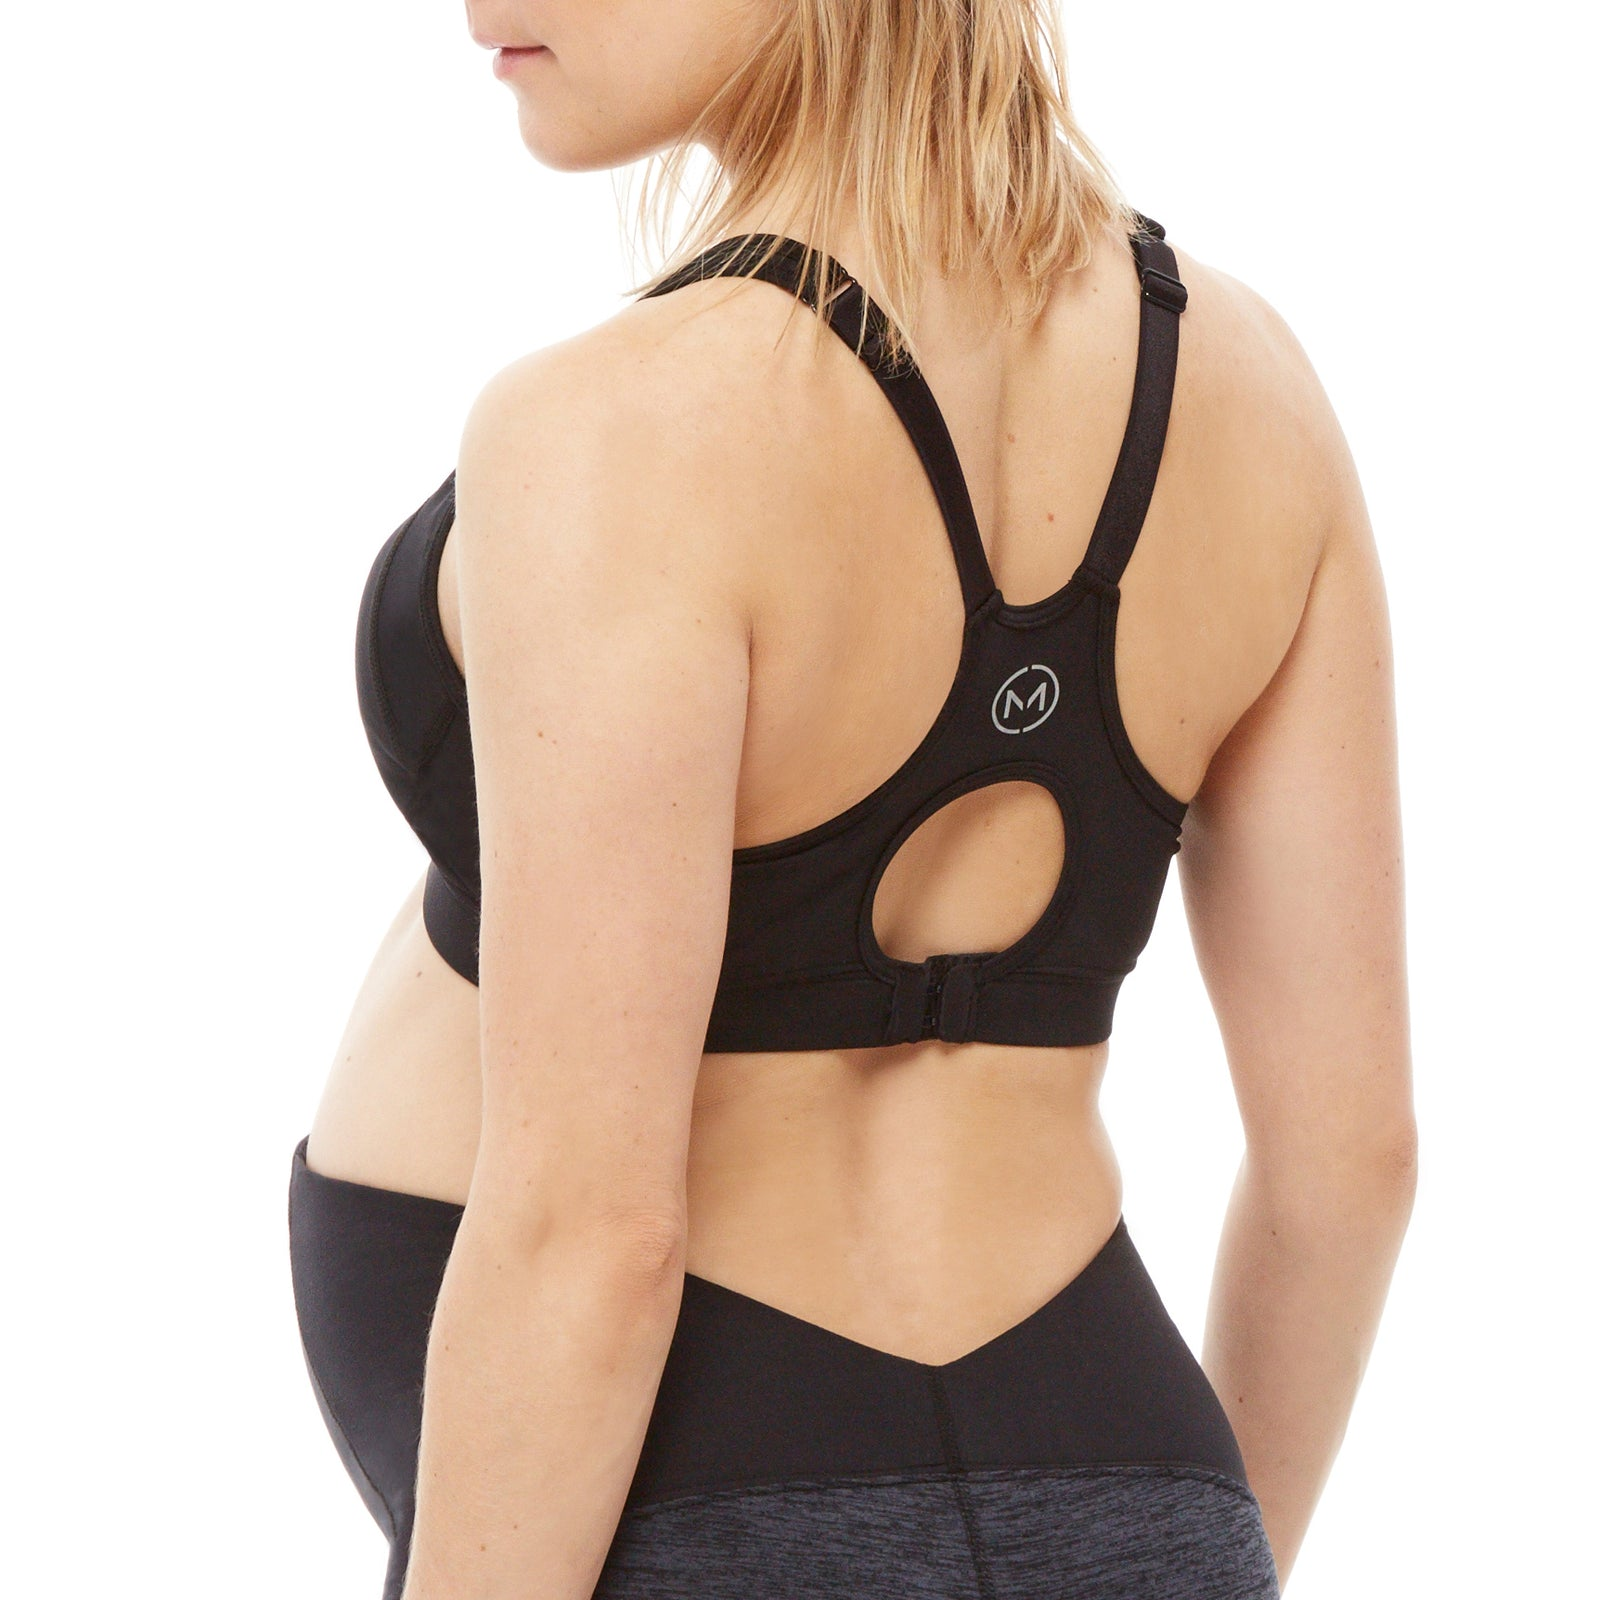 ENERGY Sports Bra Top - Adjustable